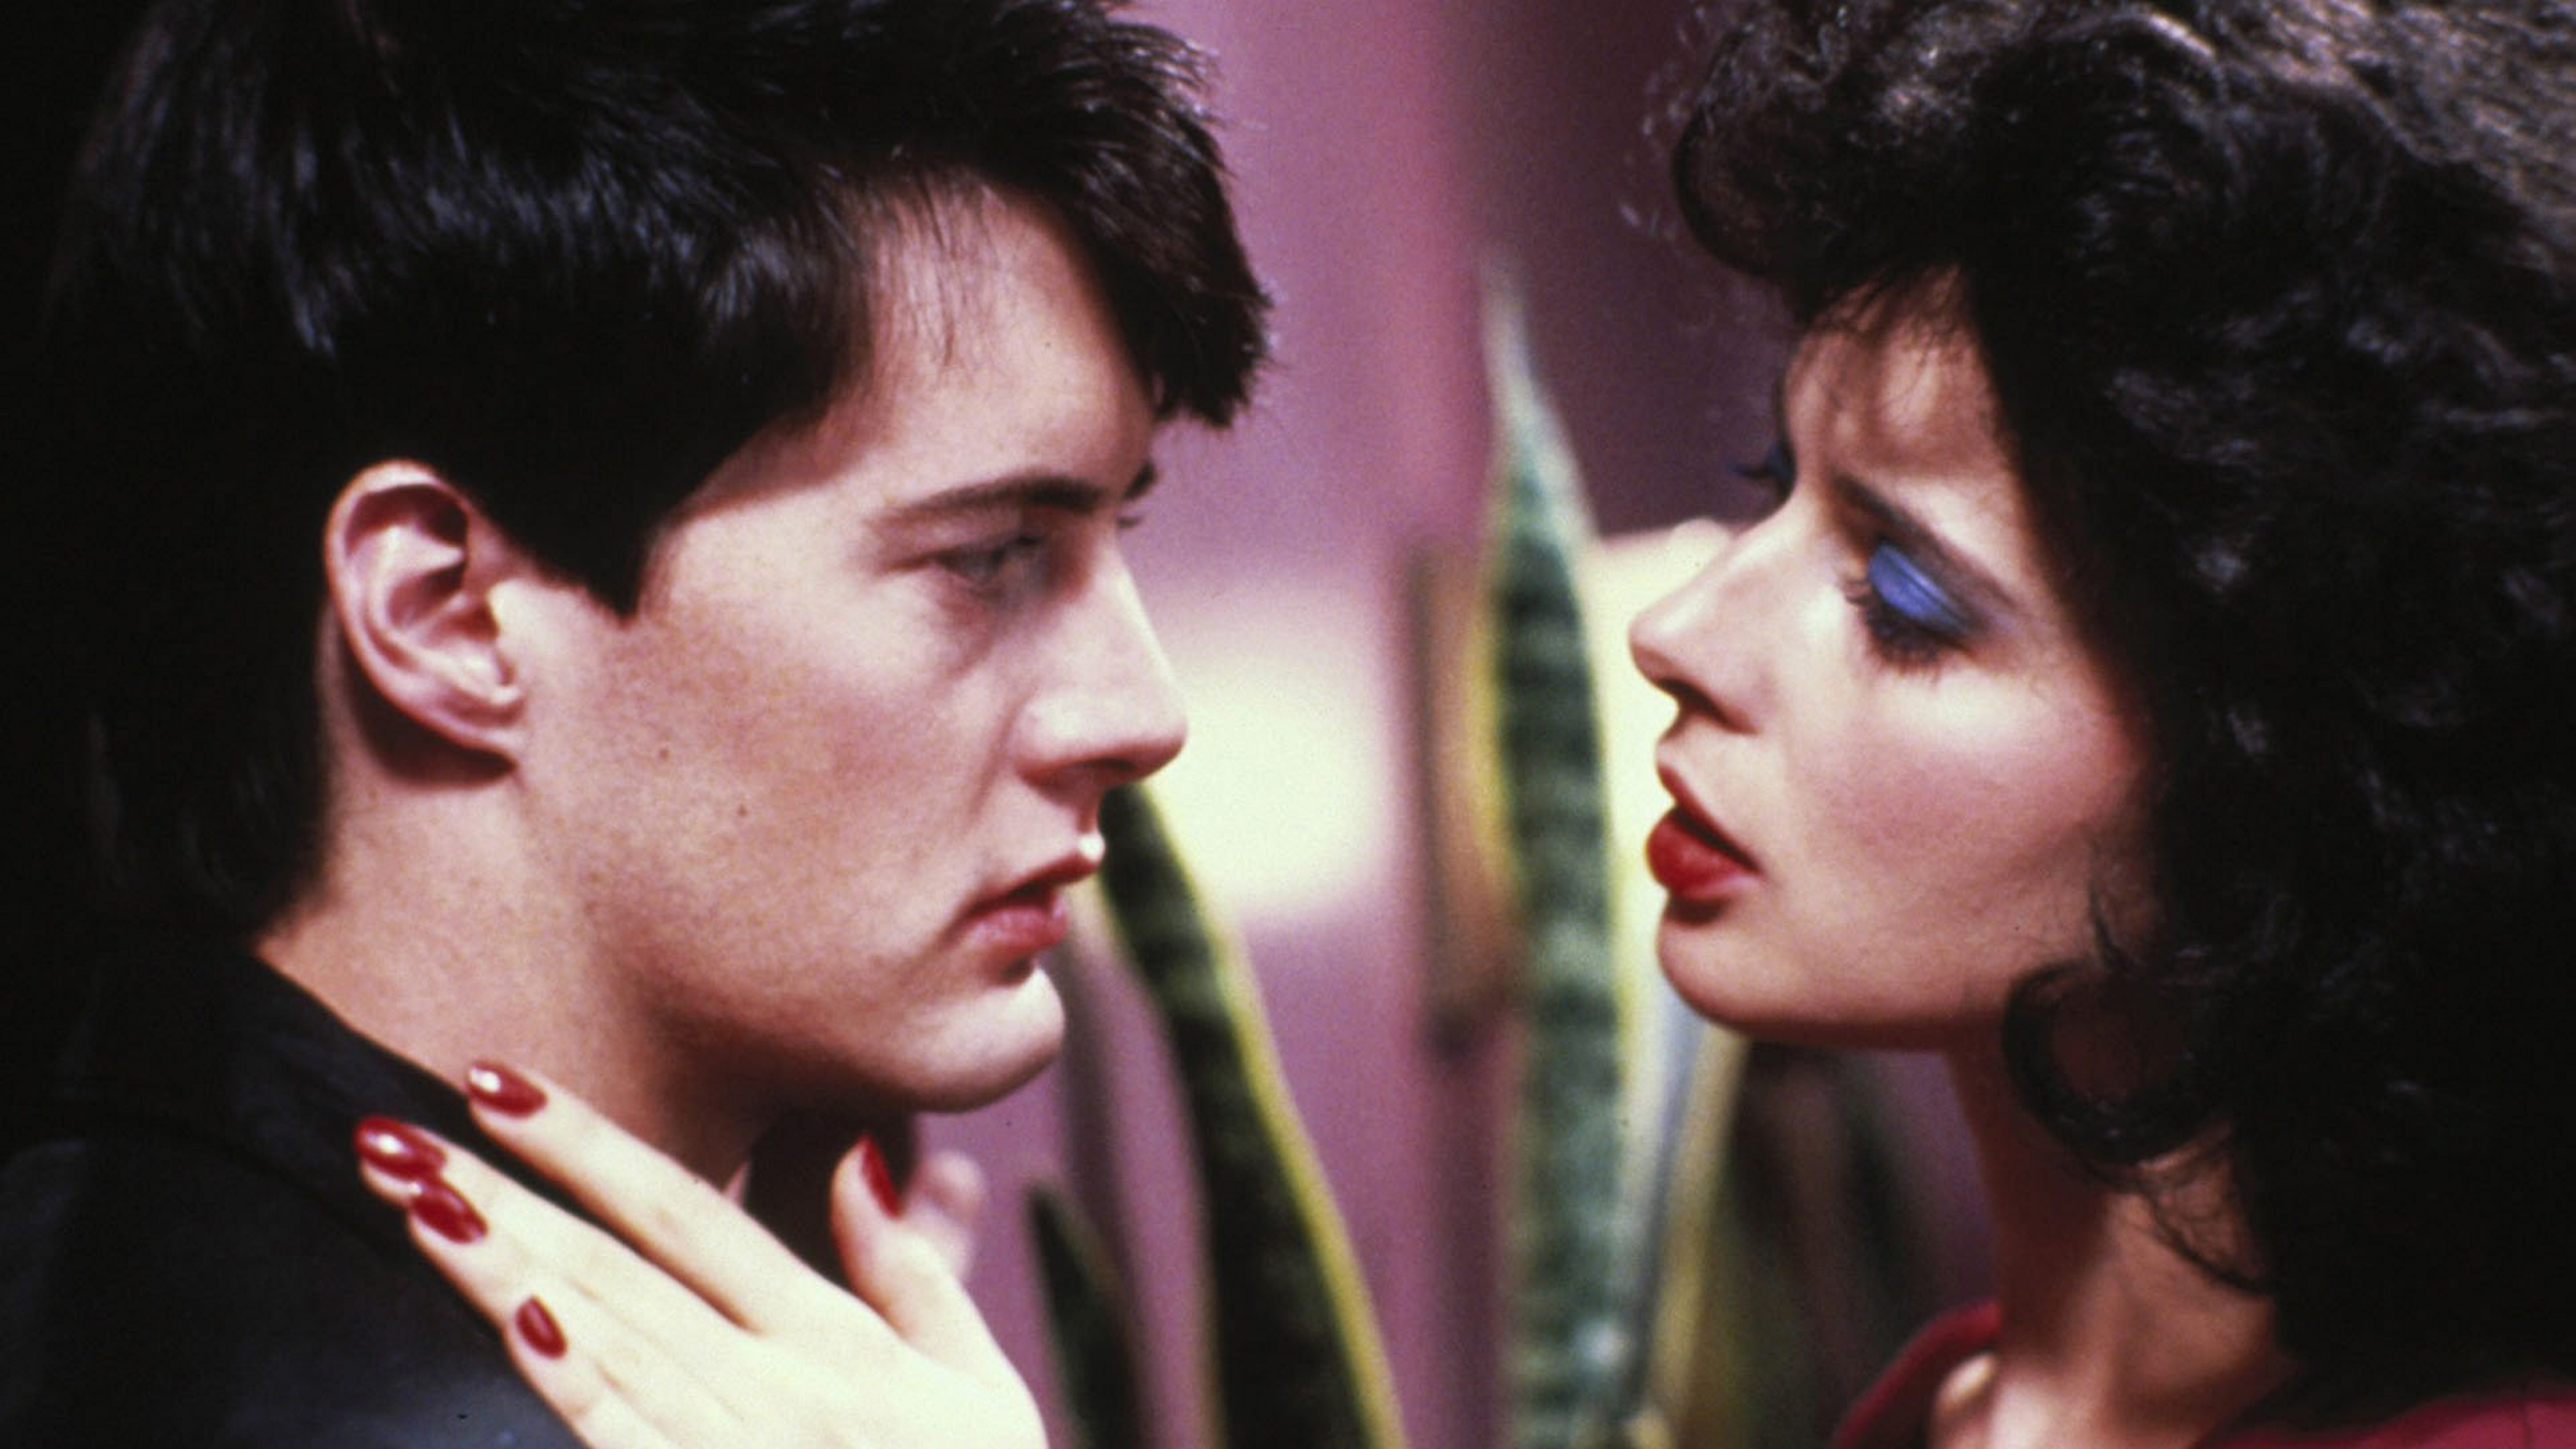 """The David Lynch classic """"Blue Velvet,"""" starring Kyle MacLachlan and Isabella Rossellini, will have a limited run at the North Park Theatre for its 30th anniversary."""